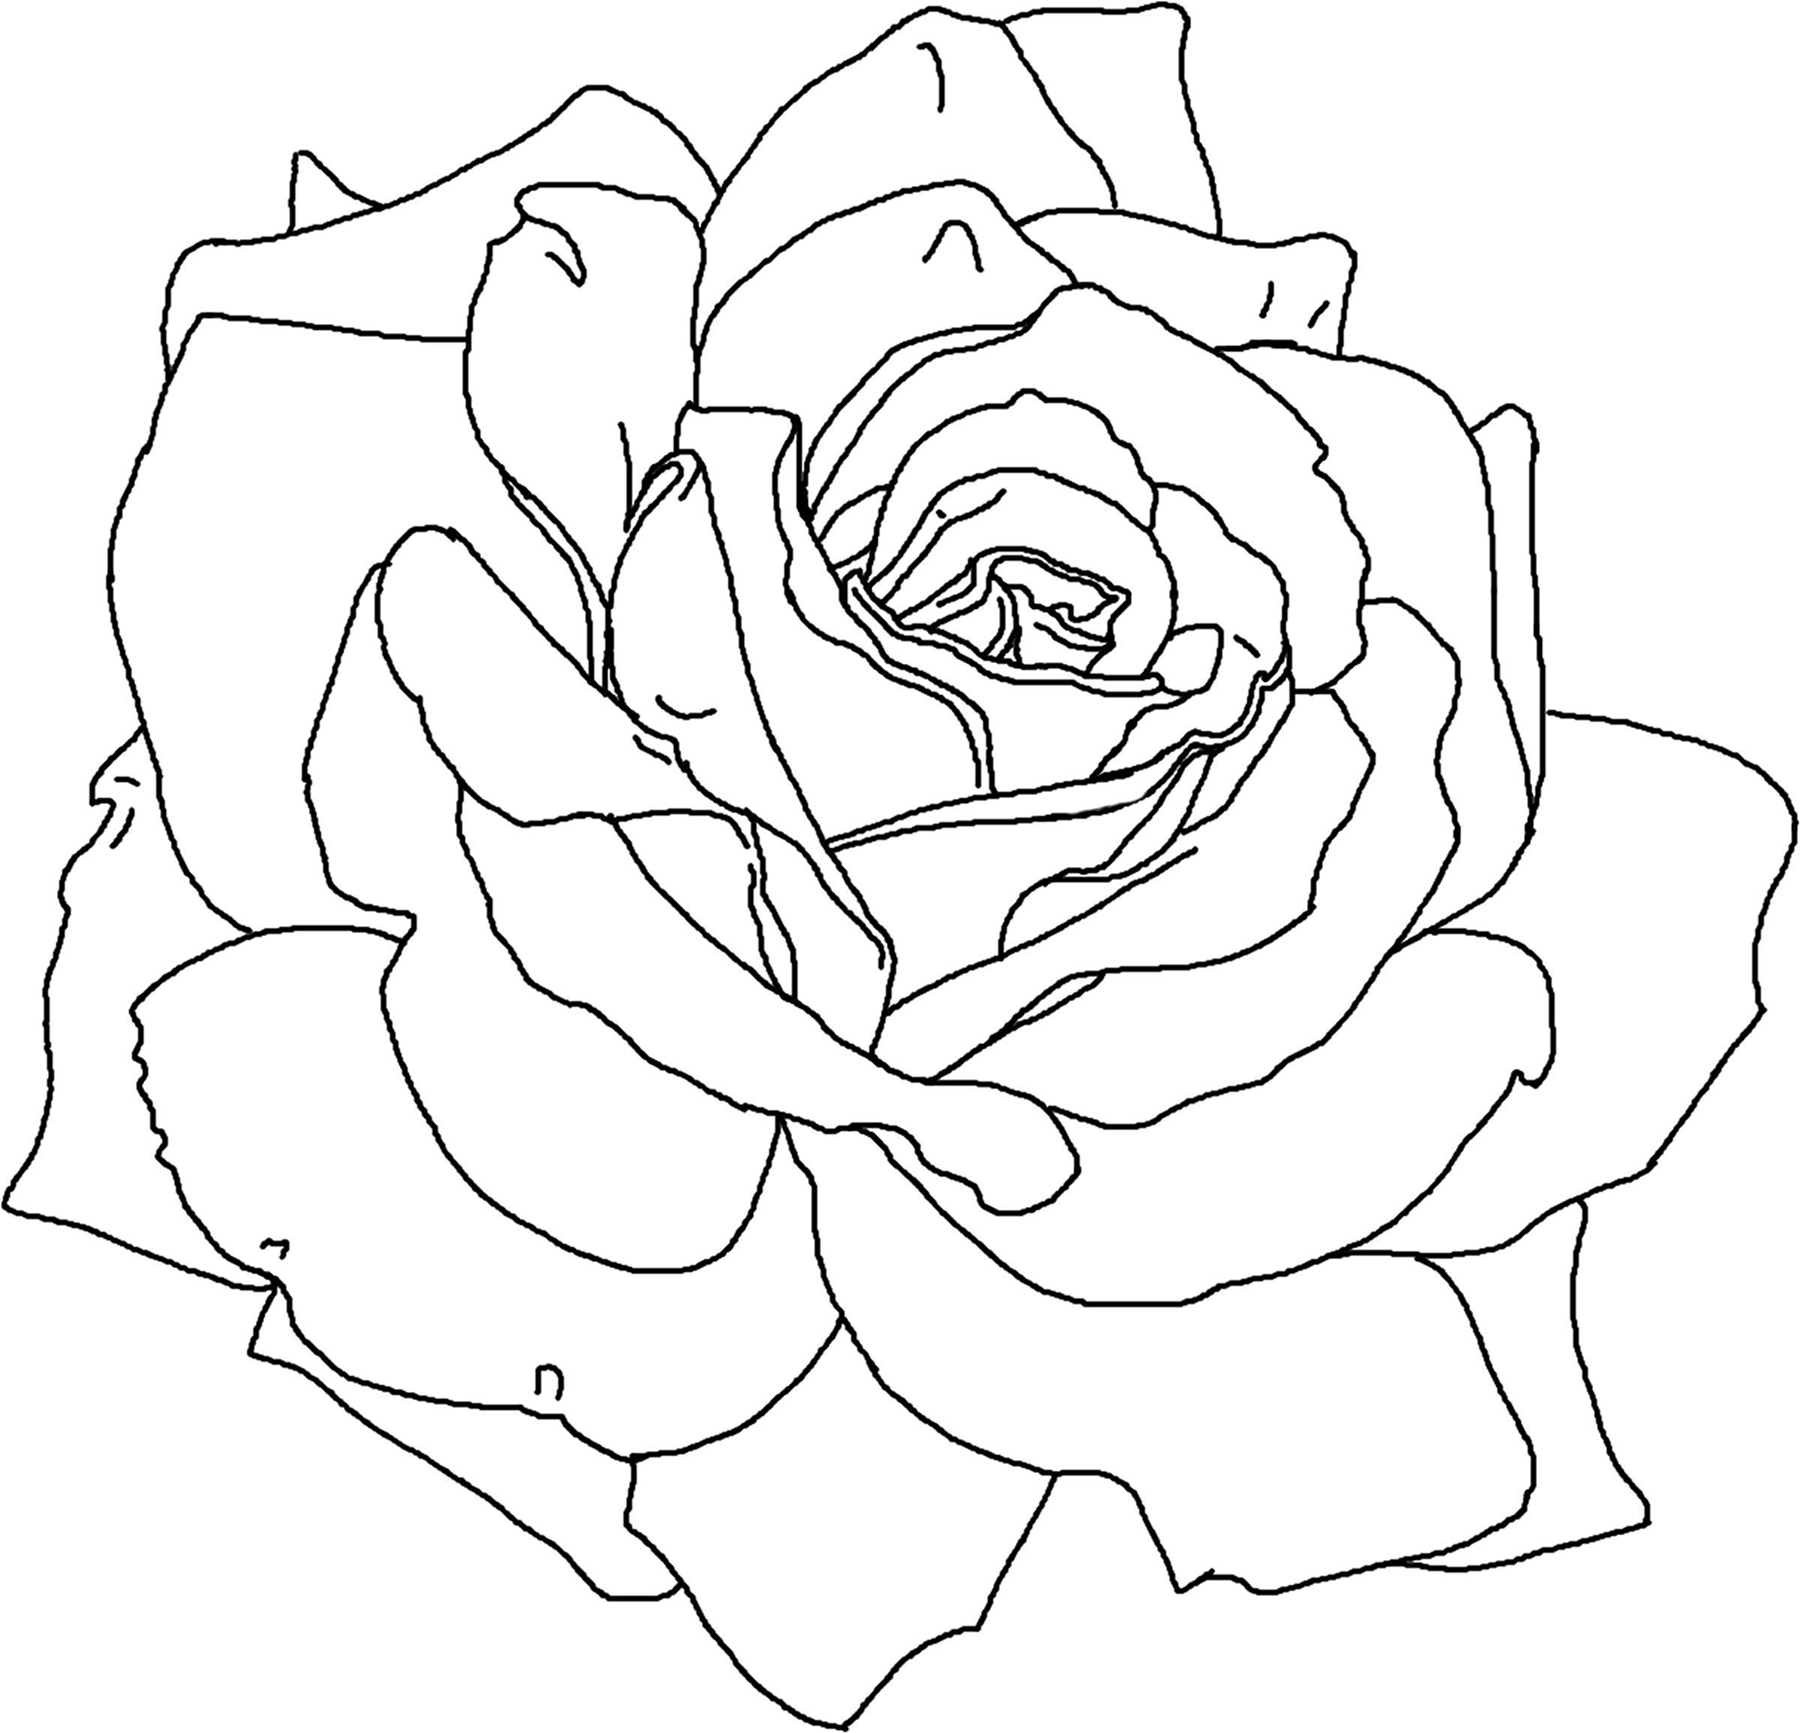 pictures of flowers for coloring free printable flower coloring pages for kids best flowers for pictures coloring of